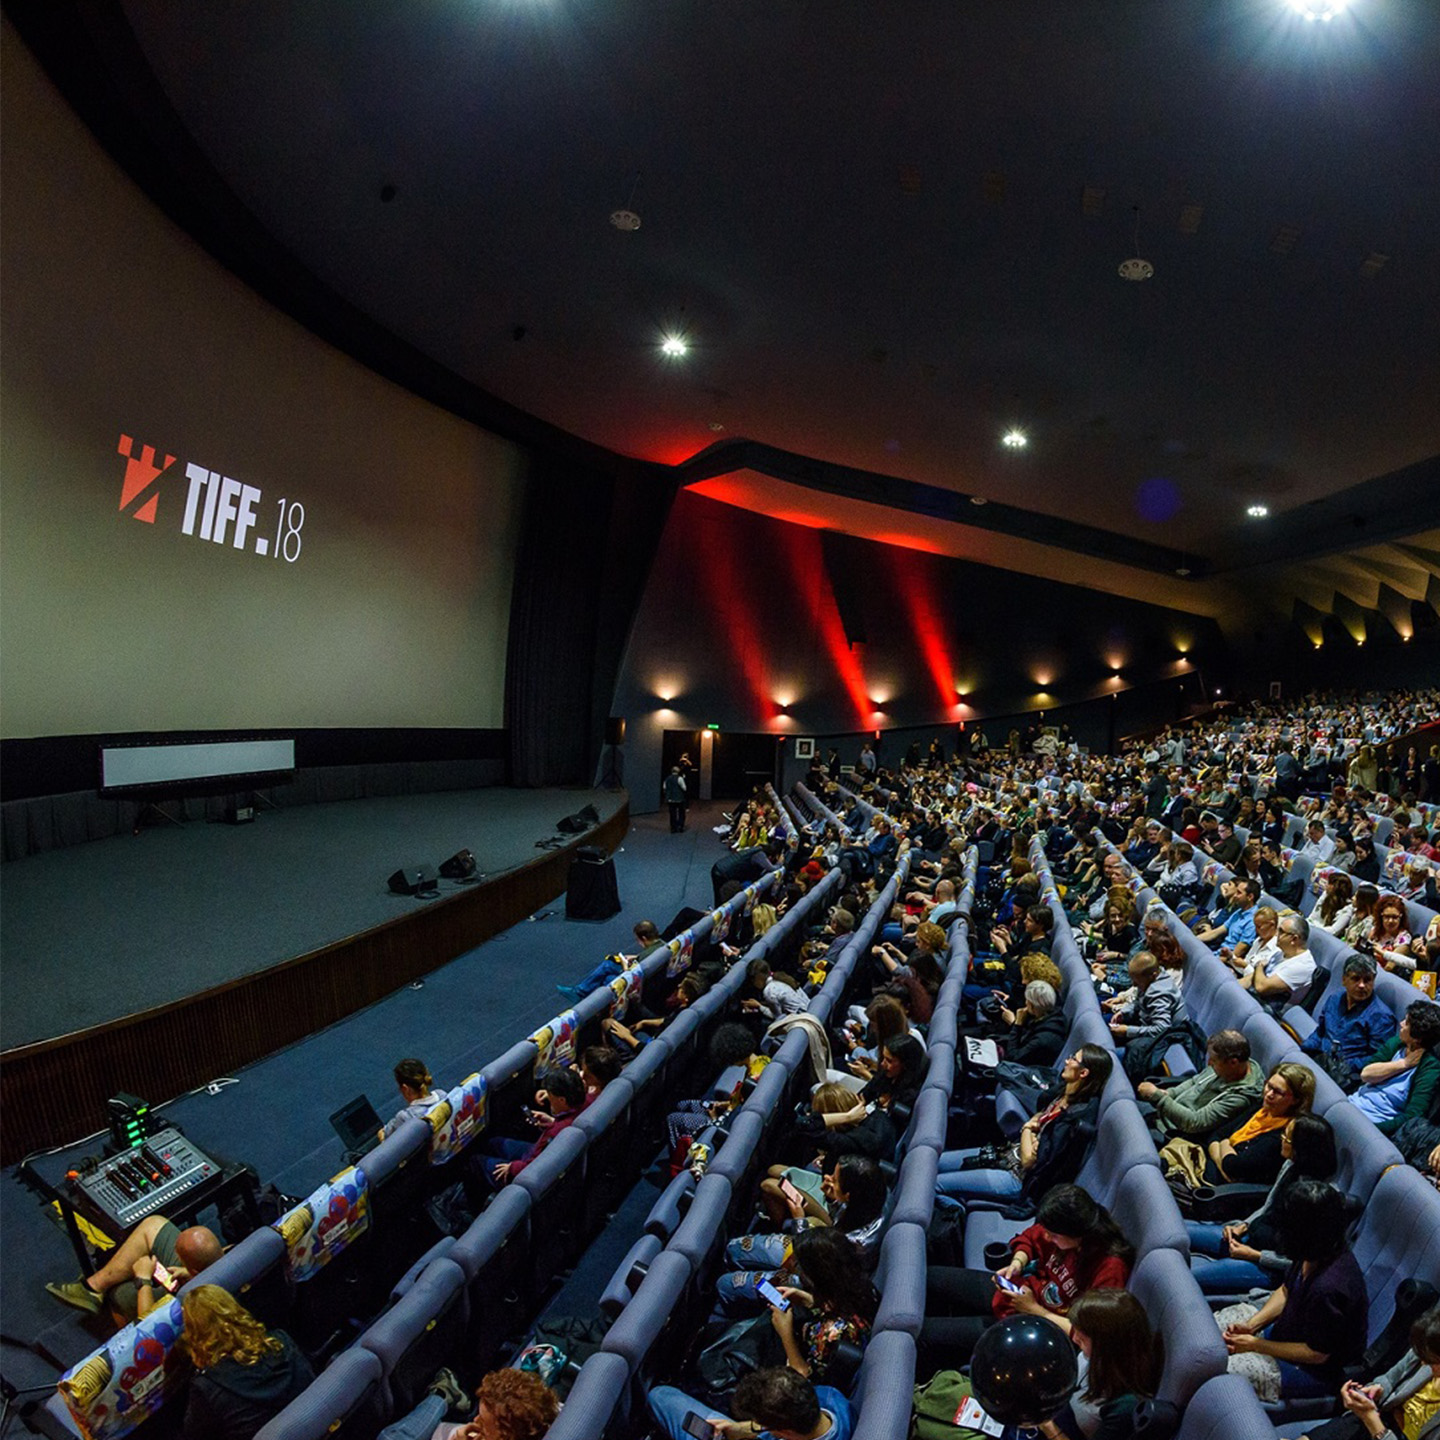 Ovations Rain on World Premiere of TIFF Opener Parking